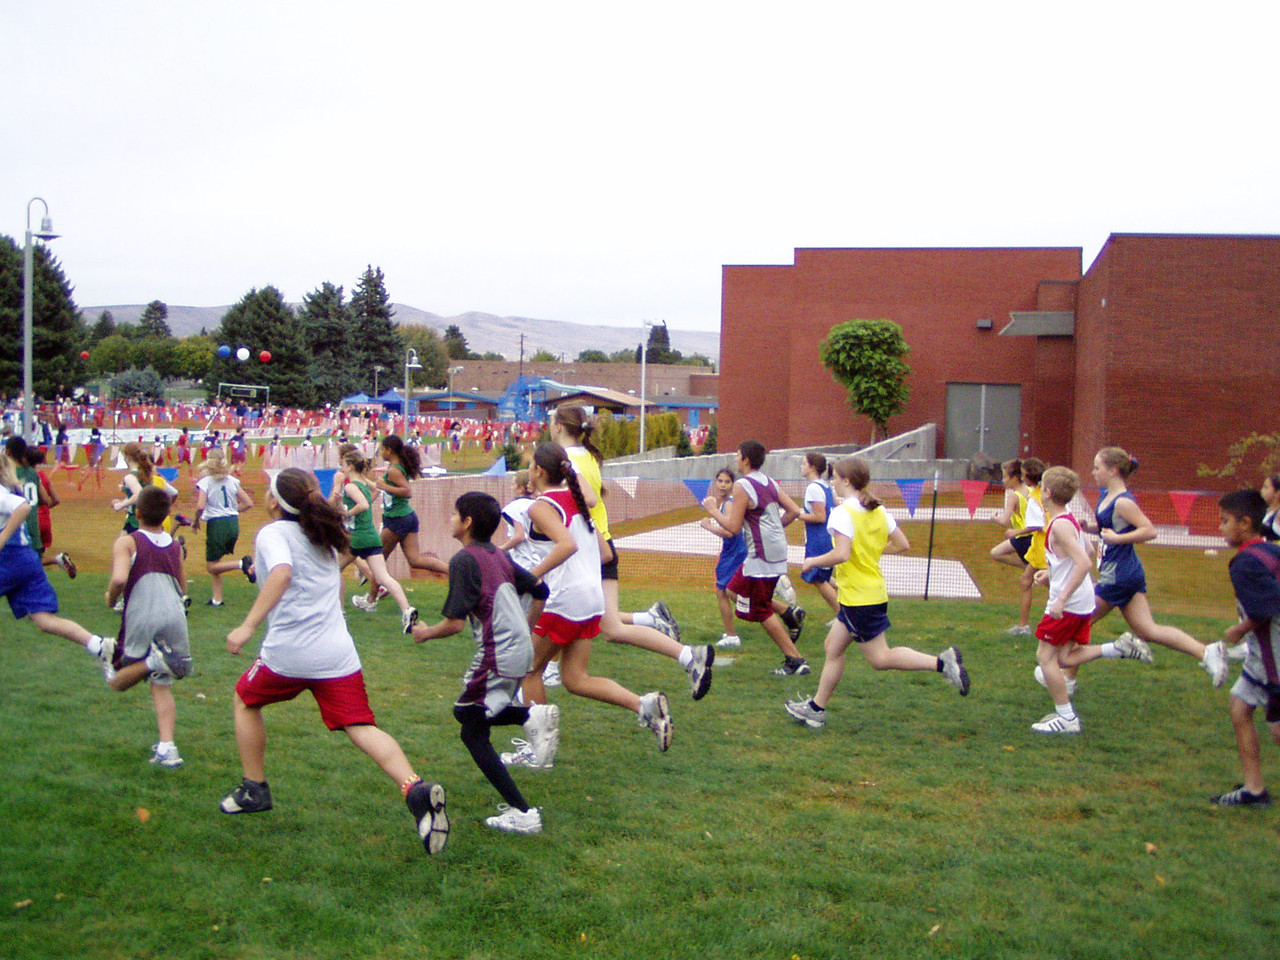 7th & 8th Grade Race, Combined